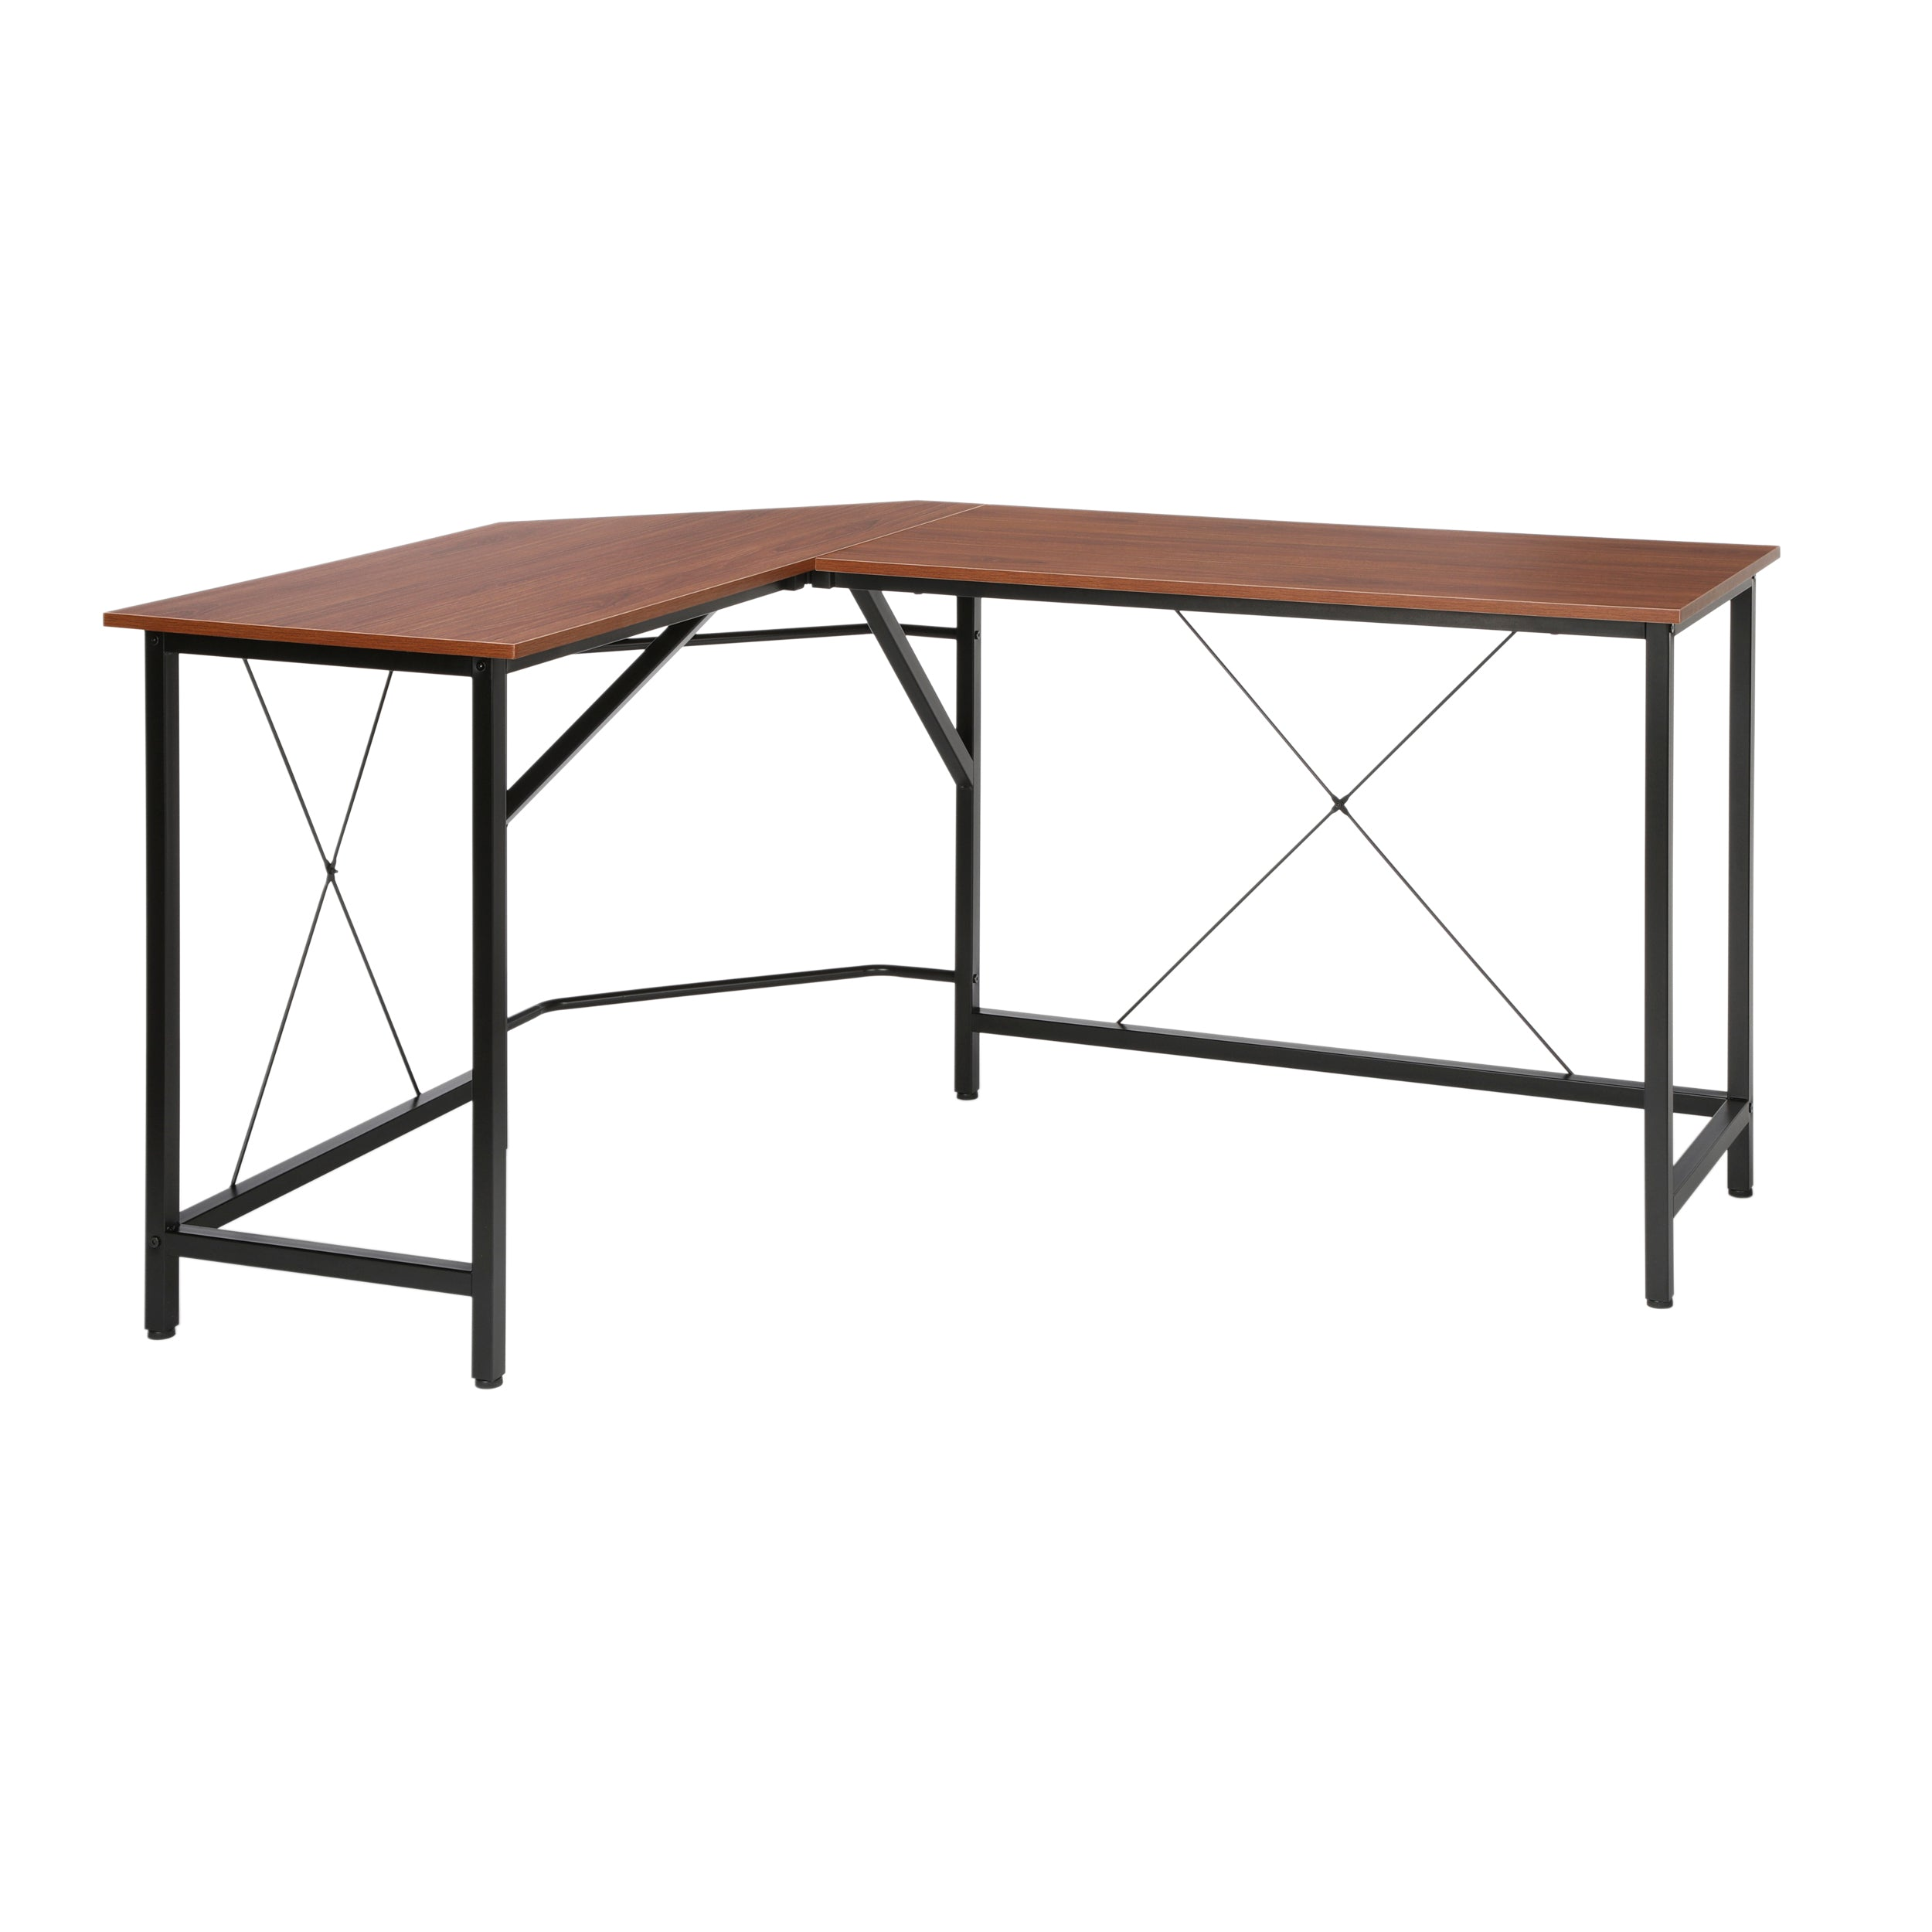 "OFM Essentials Collection 58"" Modern L-Shaped Desk Corner Desk"